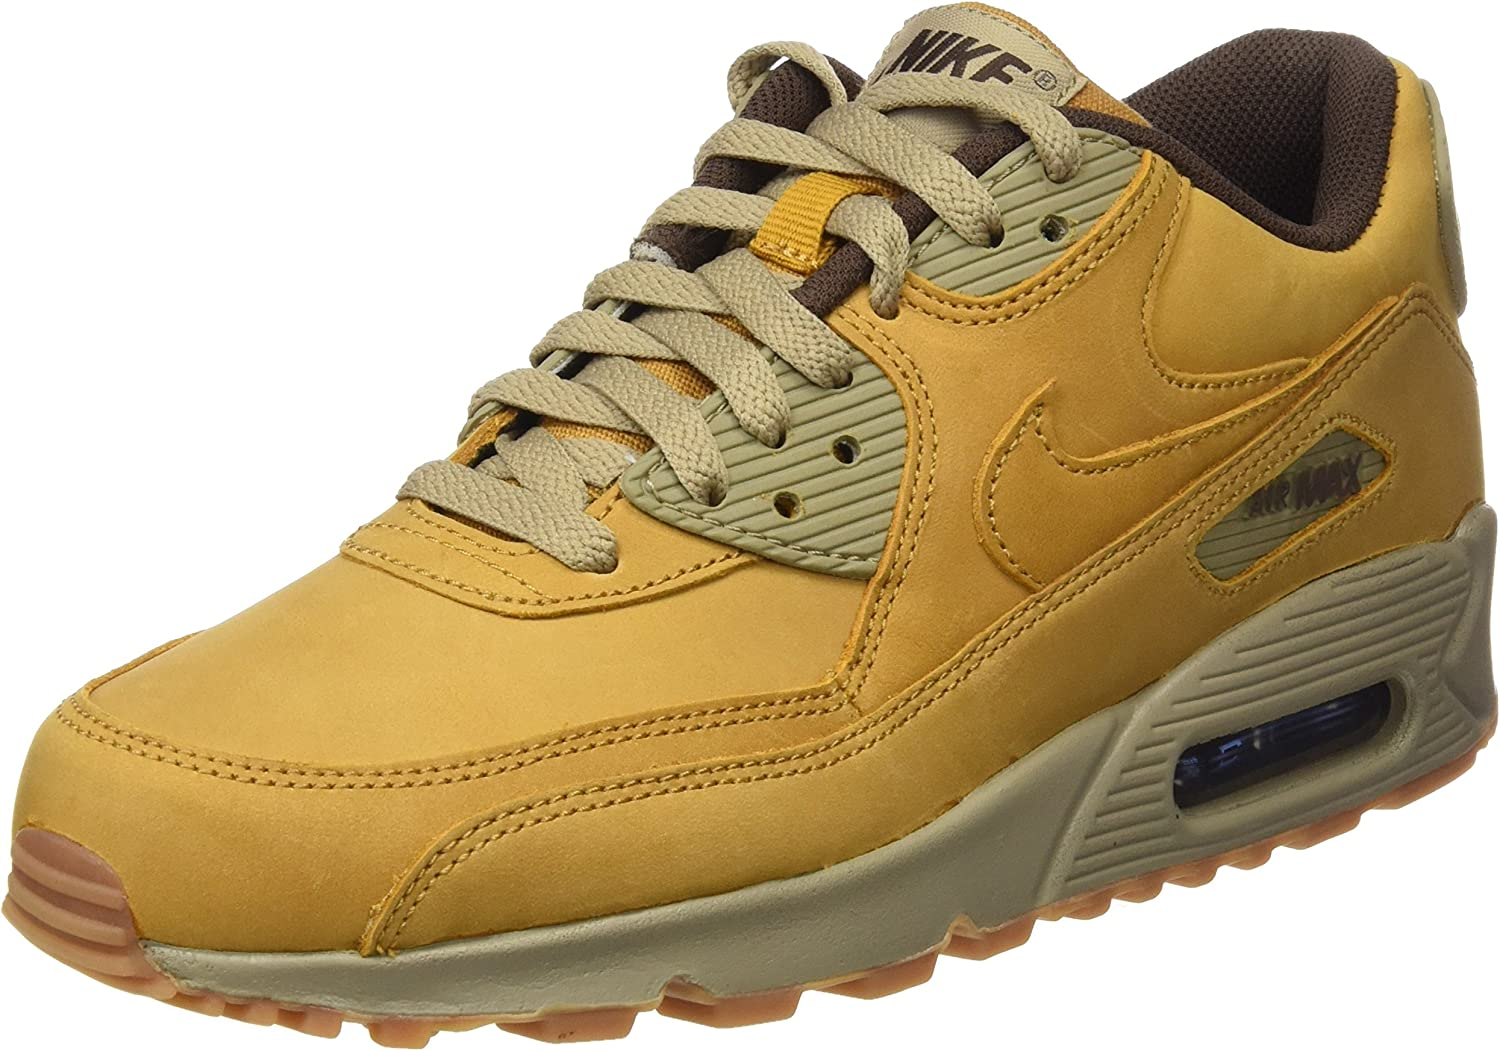 Nike Womens Air Max 90 Winter Running Trainers 880302 Sneakers shoes